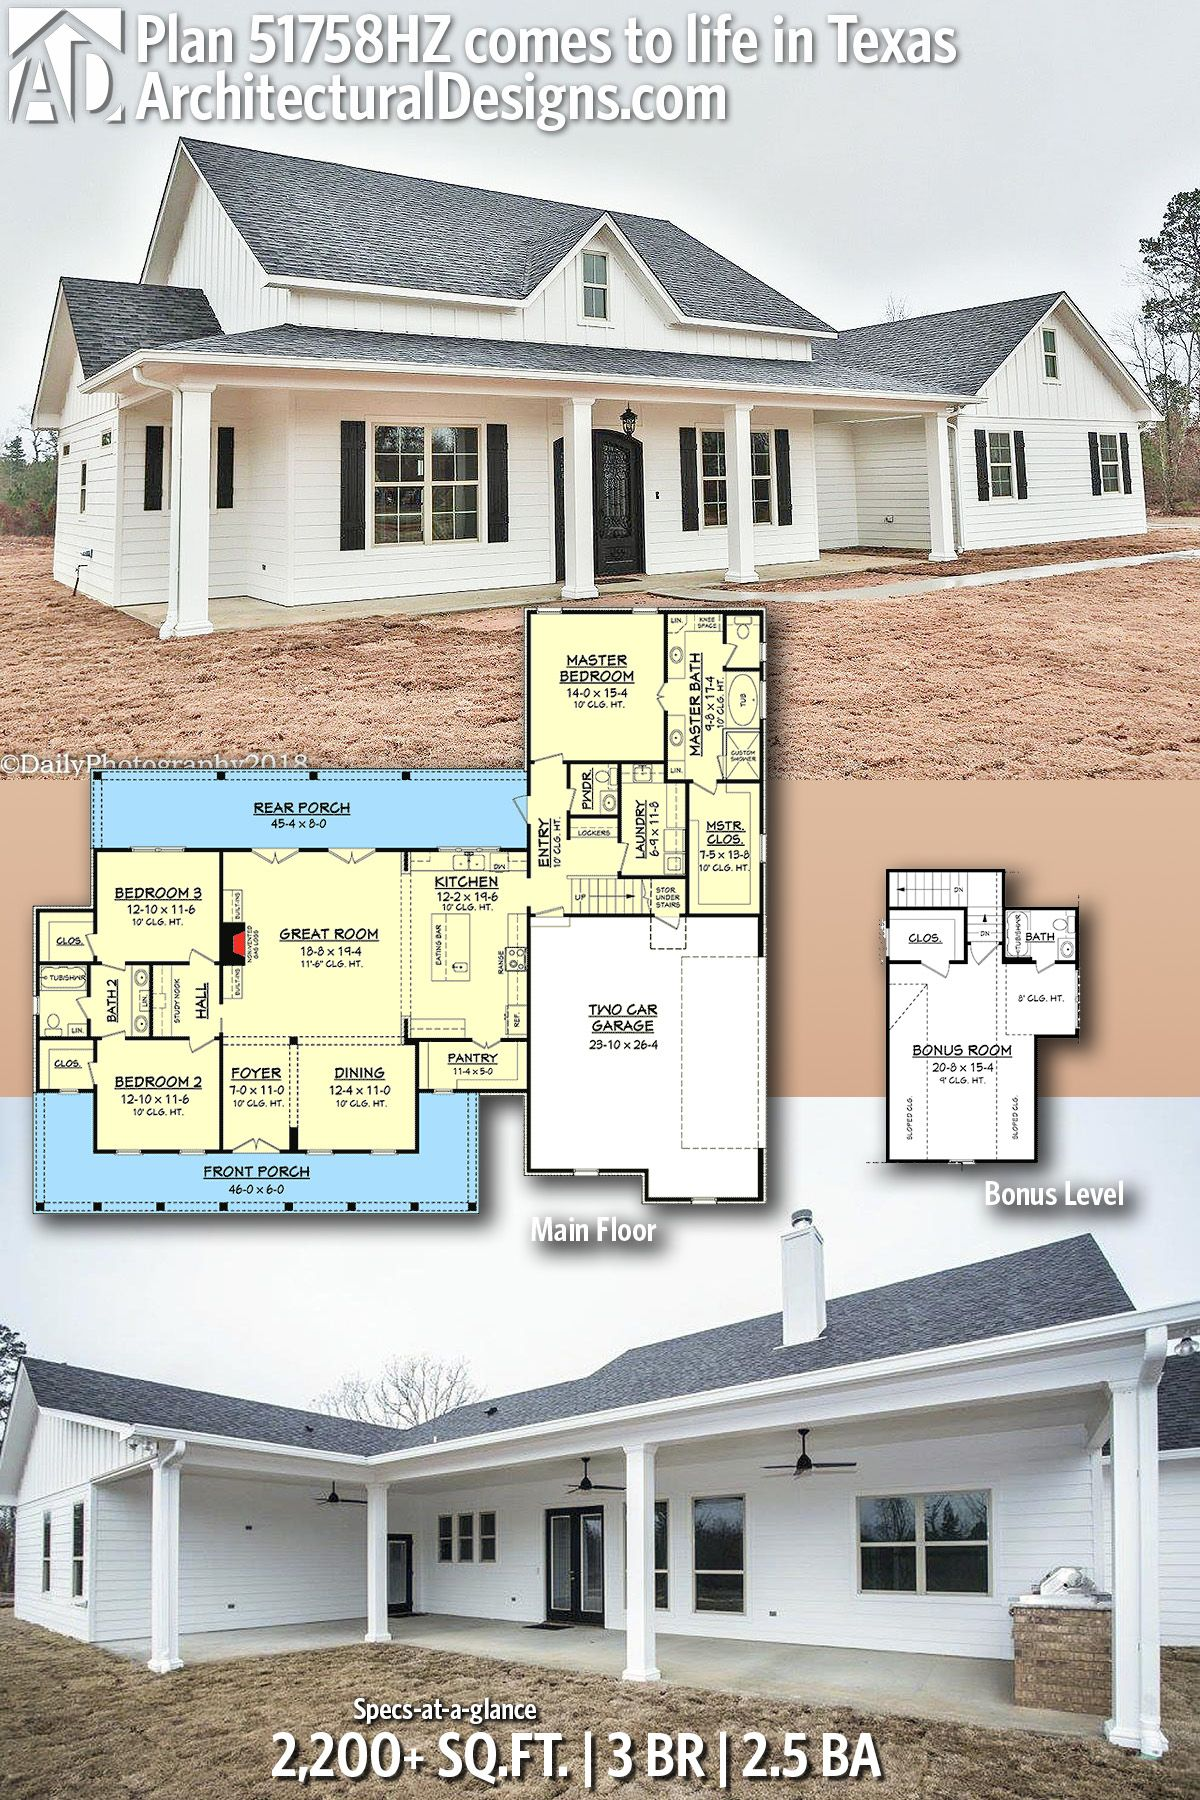 Plan 51758HZ: Three Bed Farmhouse with Optional Bonus Room ... on 2400 sq ft home plans, 800 sq ft home plans, 4500 sq ft home plans, 2750 sq ft home plans, 250 sq ft home plans, 4000 sq ft home plans, 1100 sq ft home plans, 2600 sq ft home plans, 3500 sq ft home plans, 2800 sq ft home plans, 1150 sq ft home plans, 7000 sq ft home plans, 500 sq ft home plans, 10000 sq ft home plans, 5000 sq ft home plans, 3000 sq ft home plans, 2300 sq ft home plans, 1700 sq ft home plans, 650 sq ft home plans, 3800 sq ft home plans,